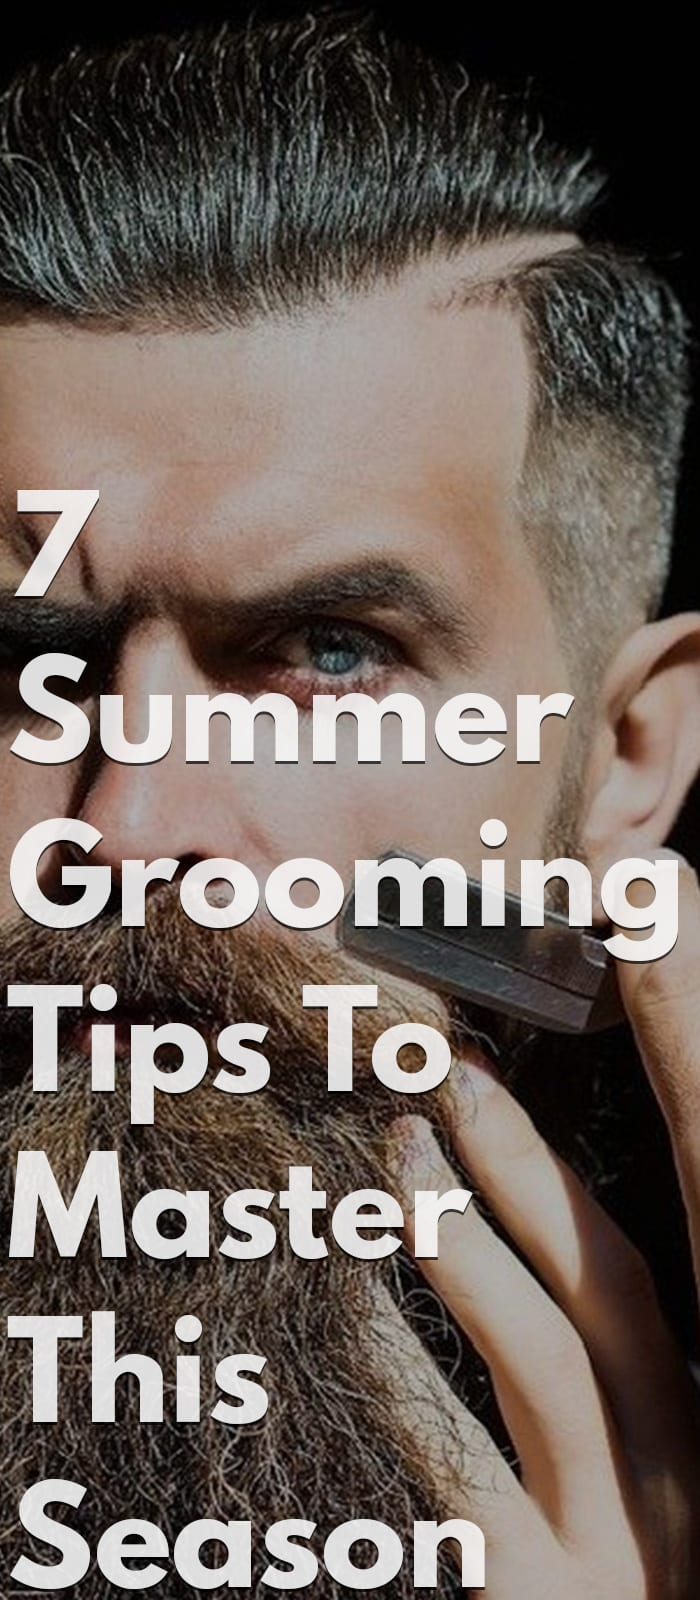 7 Summer Grooming Tips To Master